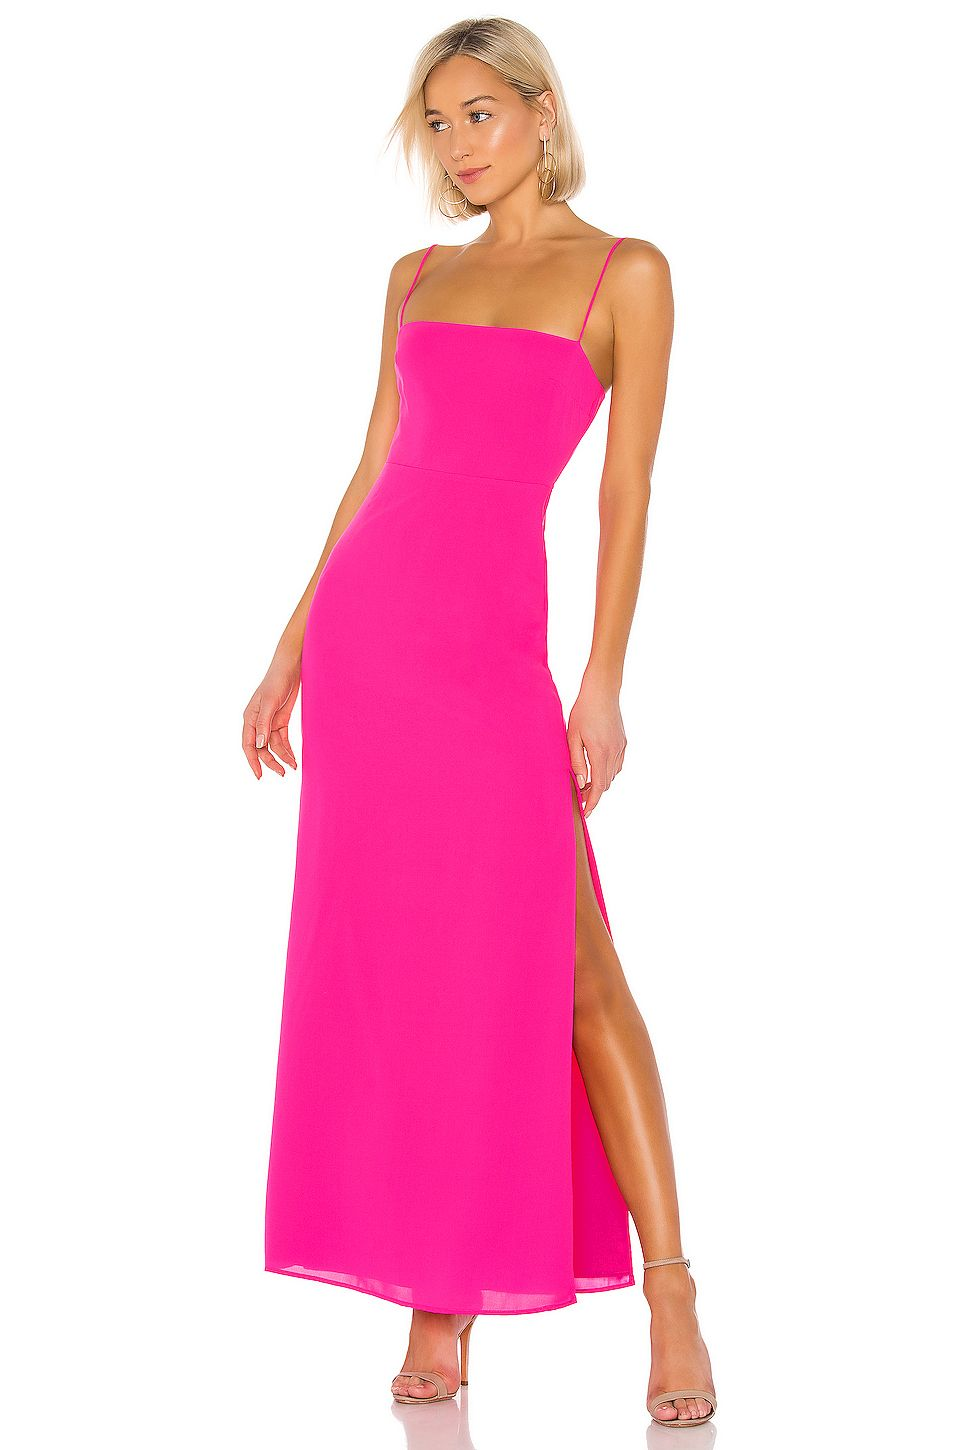 Pink Revolve Prom Dress Maxi Dress Cocktail Dresses Fashion Clothes Women Buy prom dresses uk and get the best deals at the lowest prices on ebay! pinterest